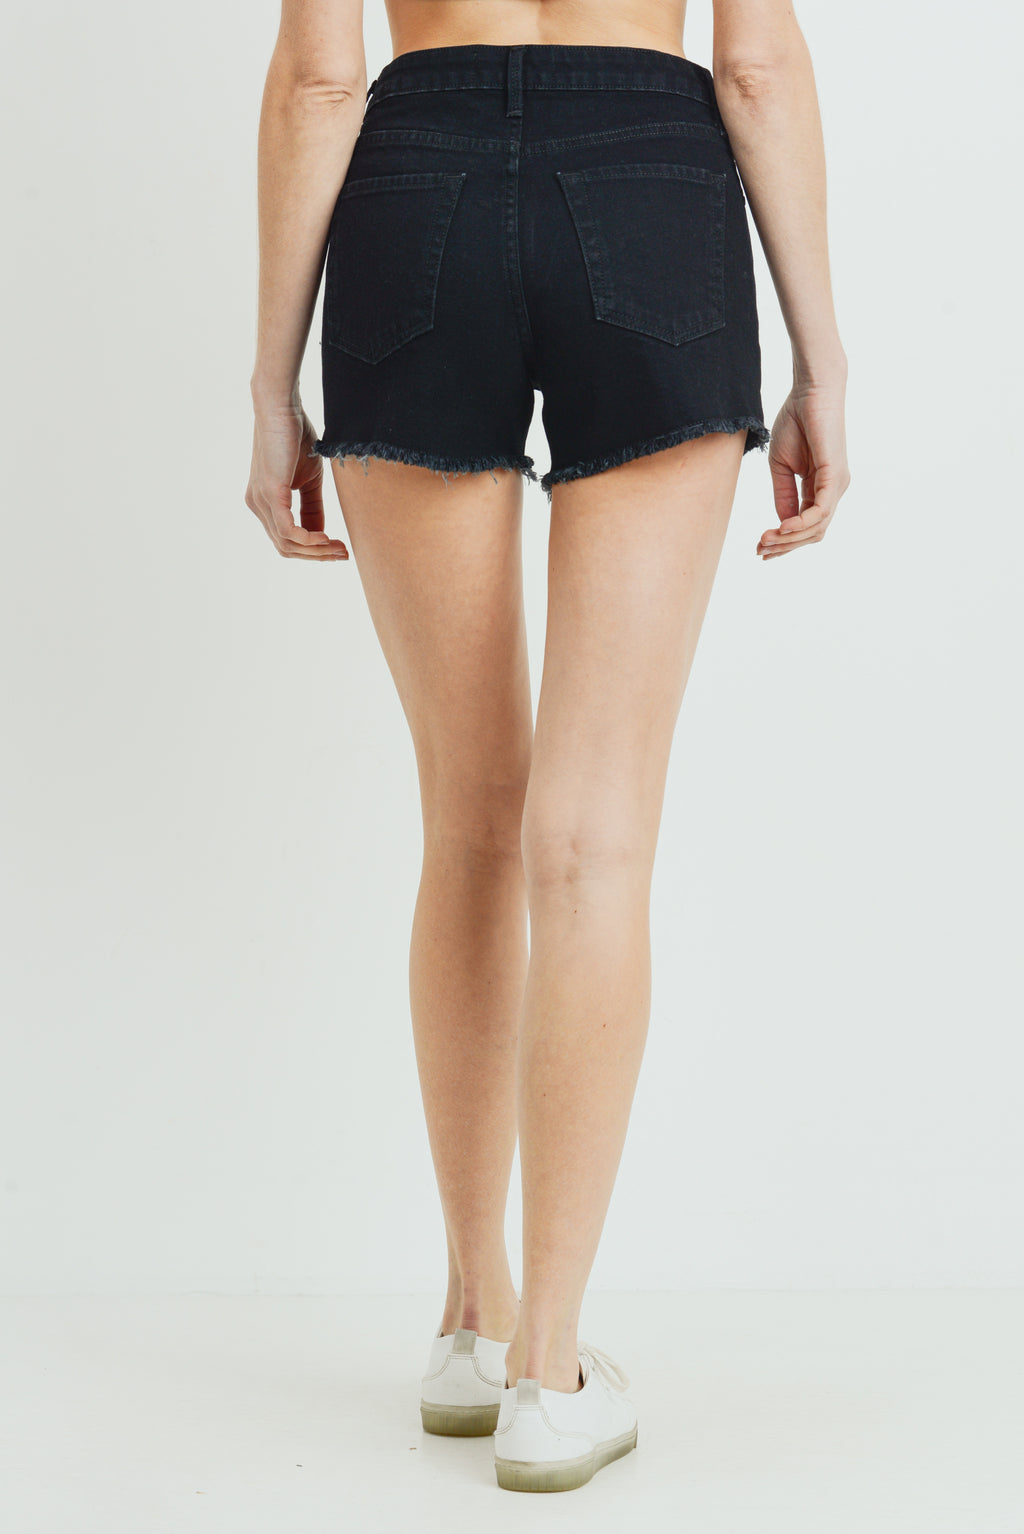 LAST CALL SIZE XS | Black Frayed Hem Jean Shorts with Side Slit